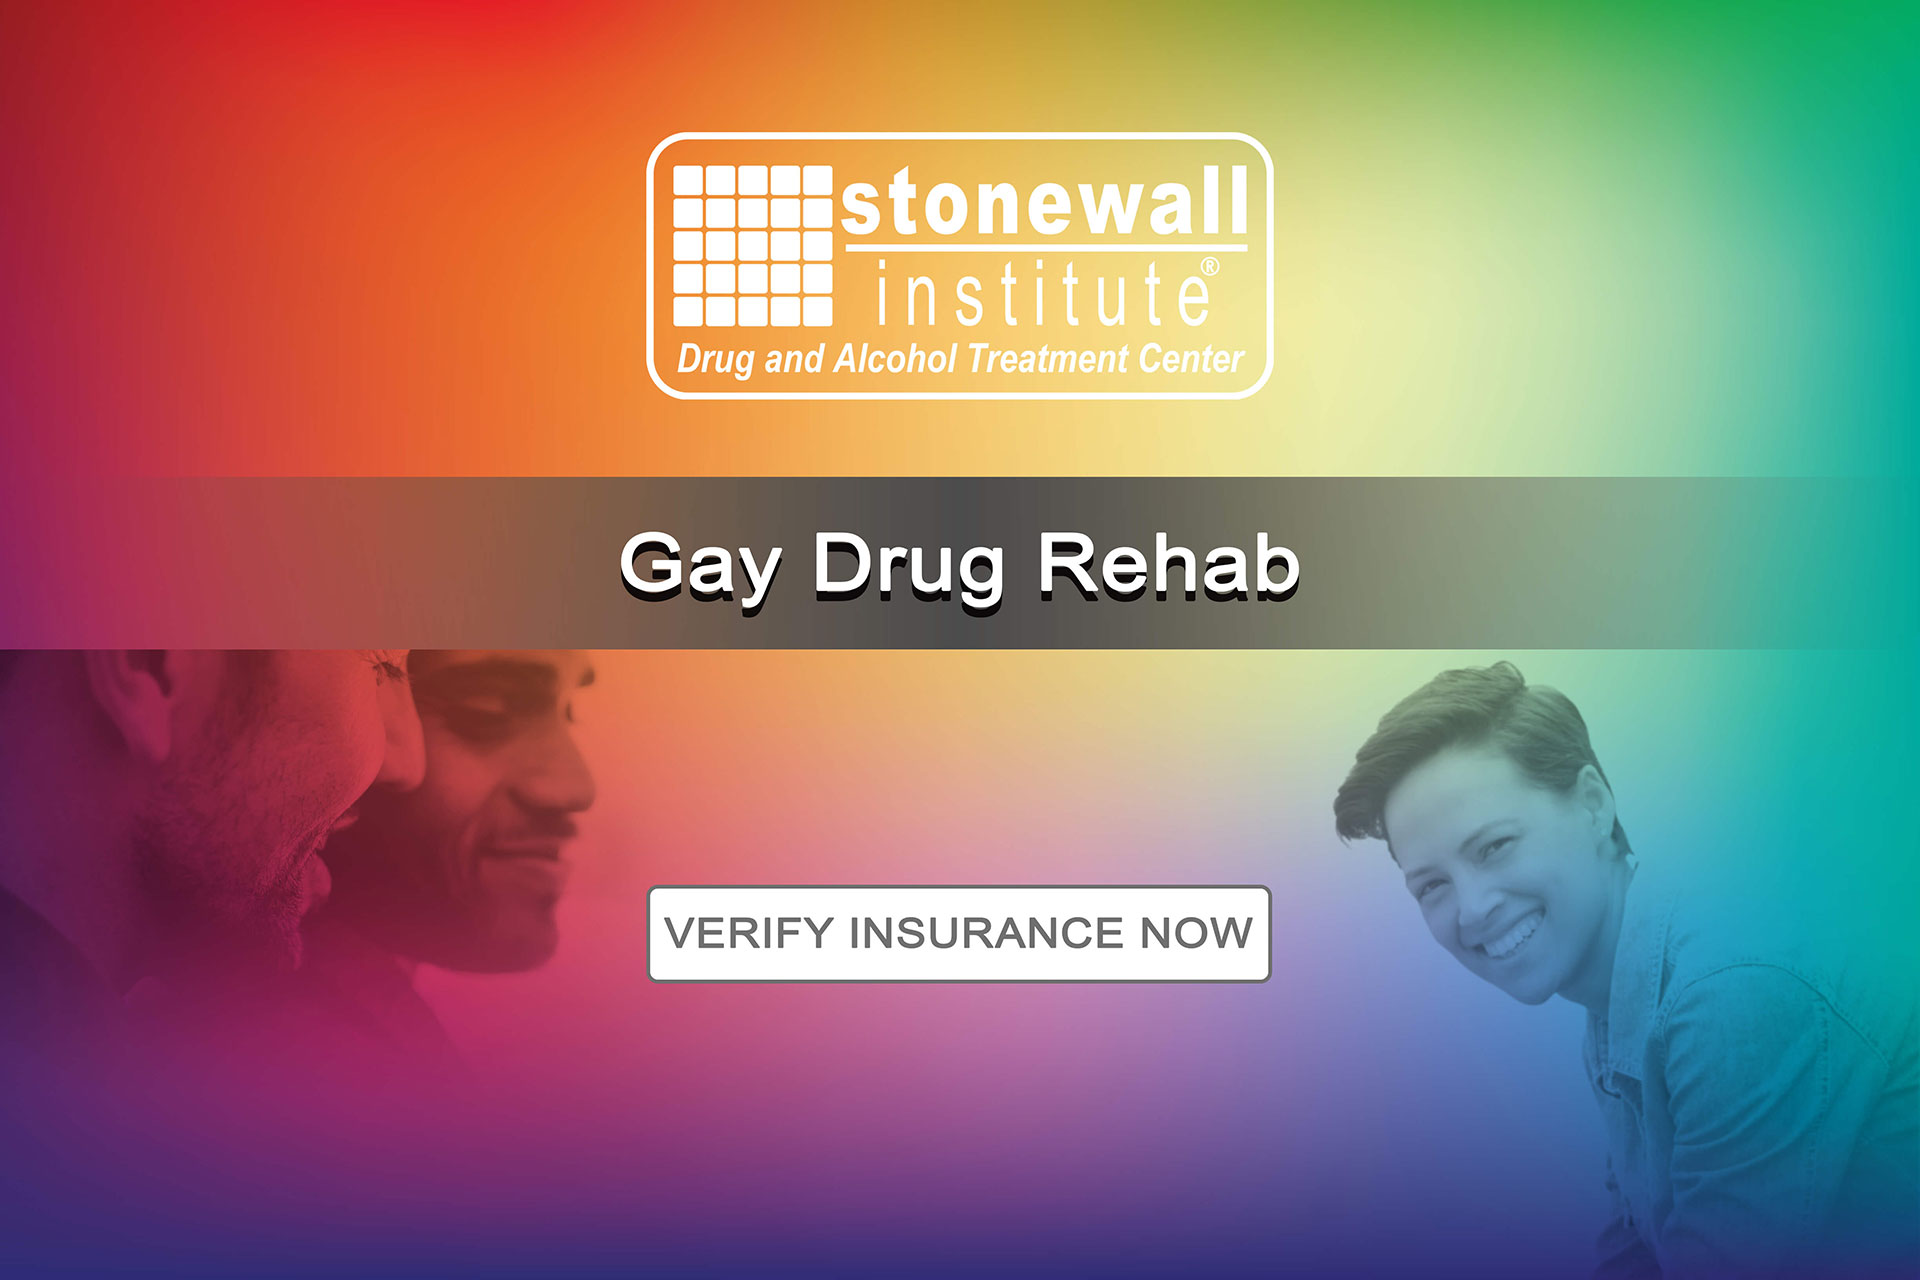 Gay Drug Rehab